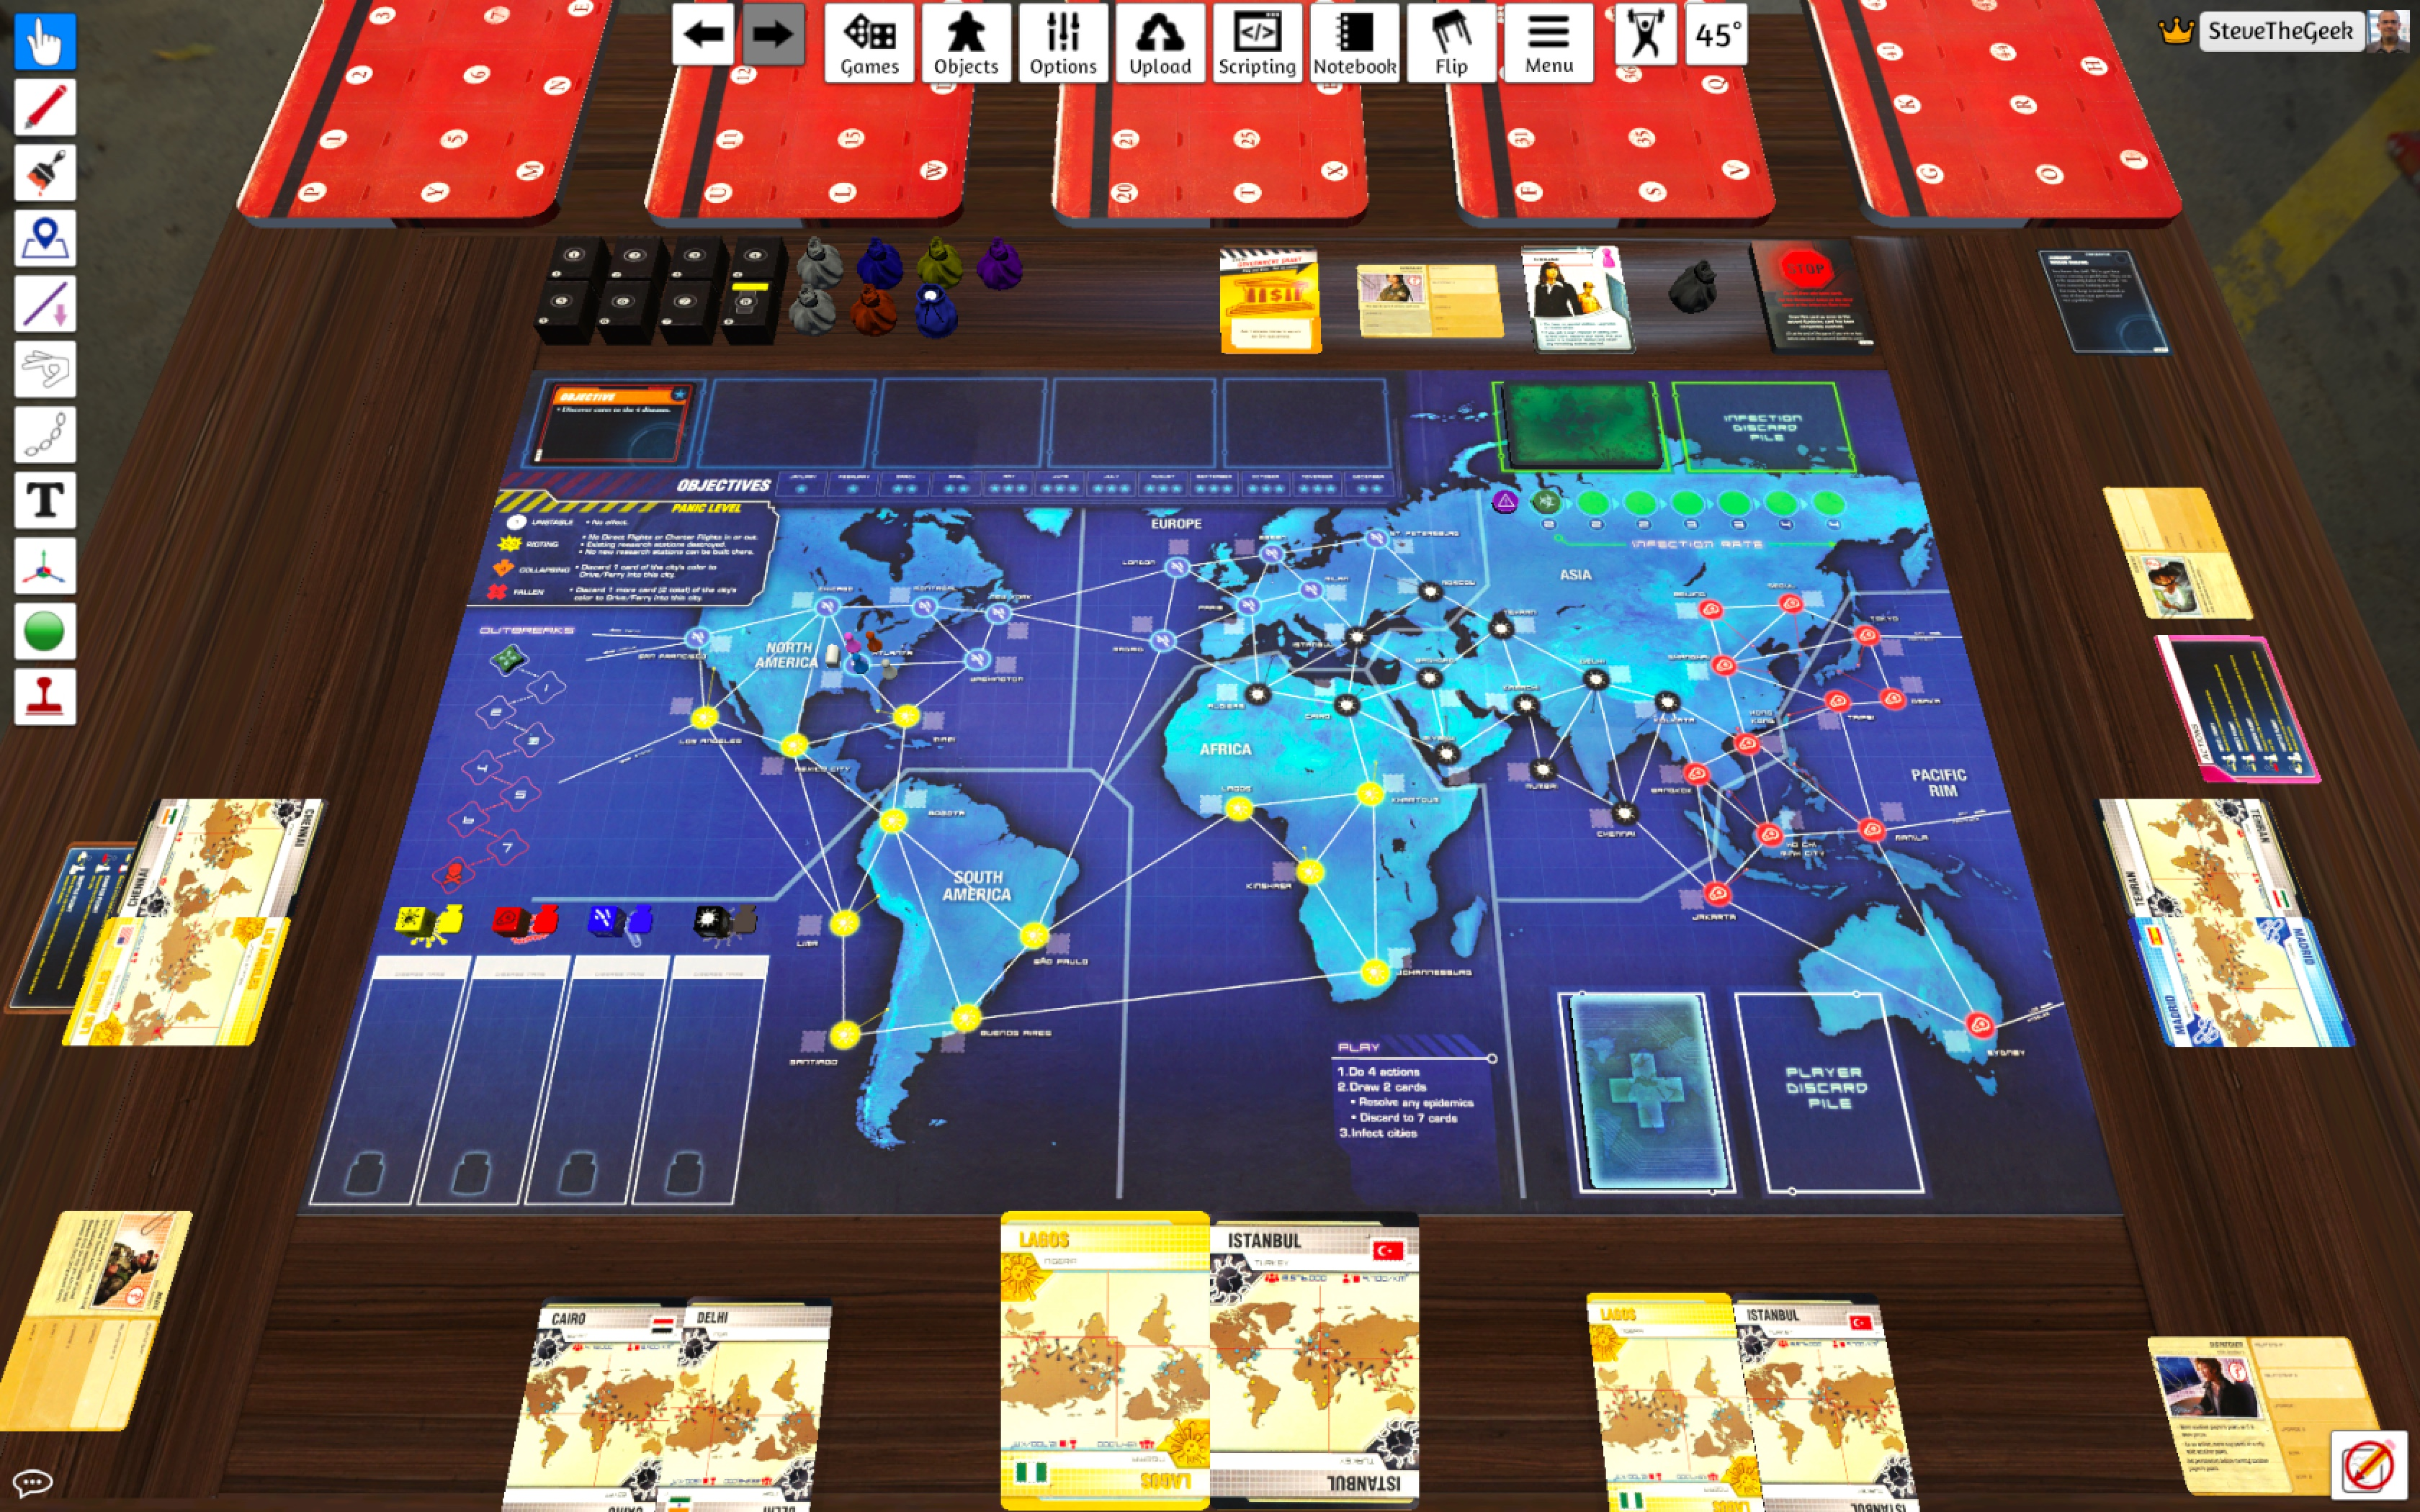 https://geekbecois.com/wp-content/uploads/2018/07/tabletop-simulator-pandemic-legacy.jpg